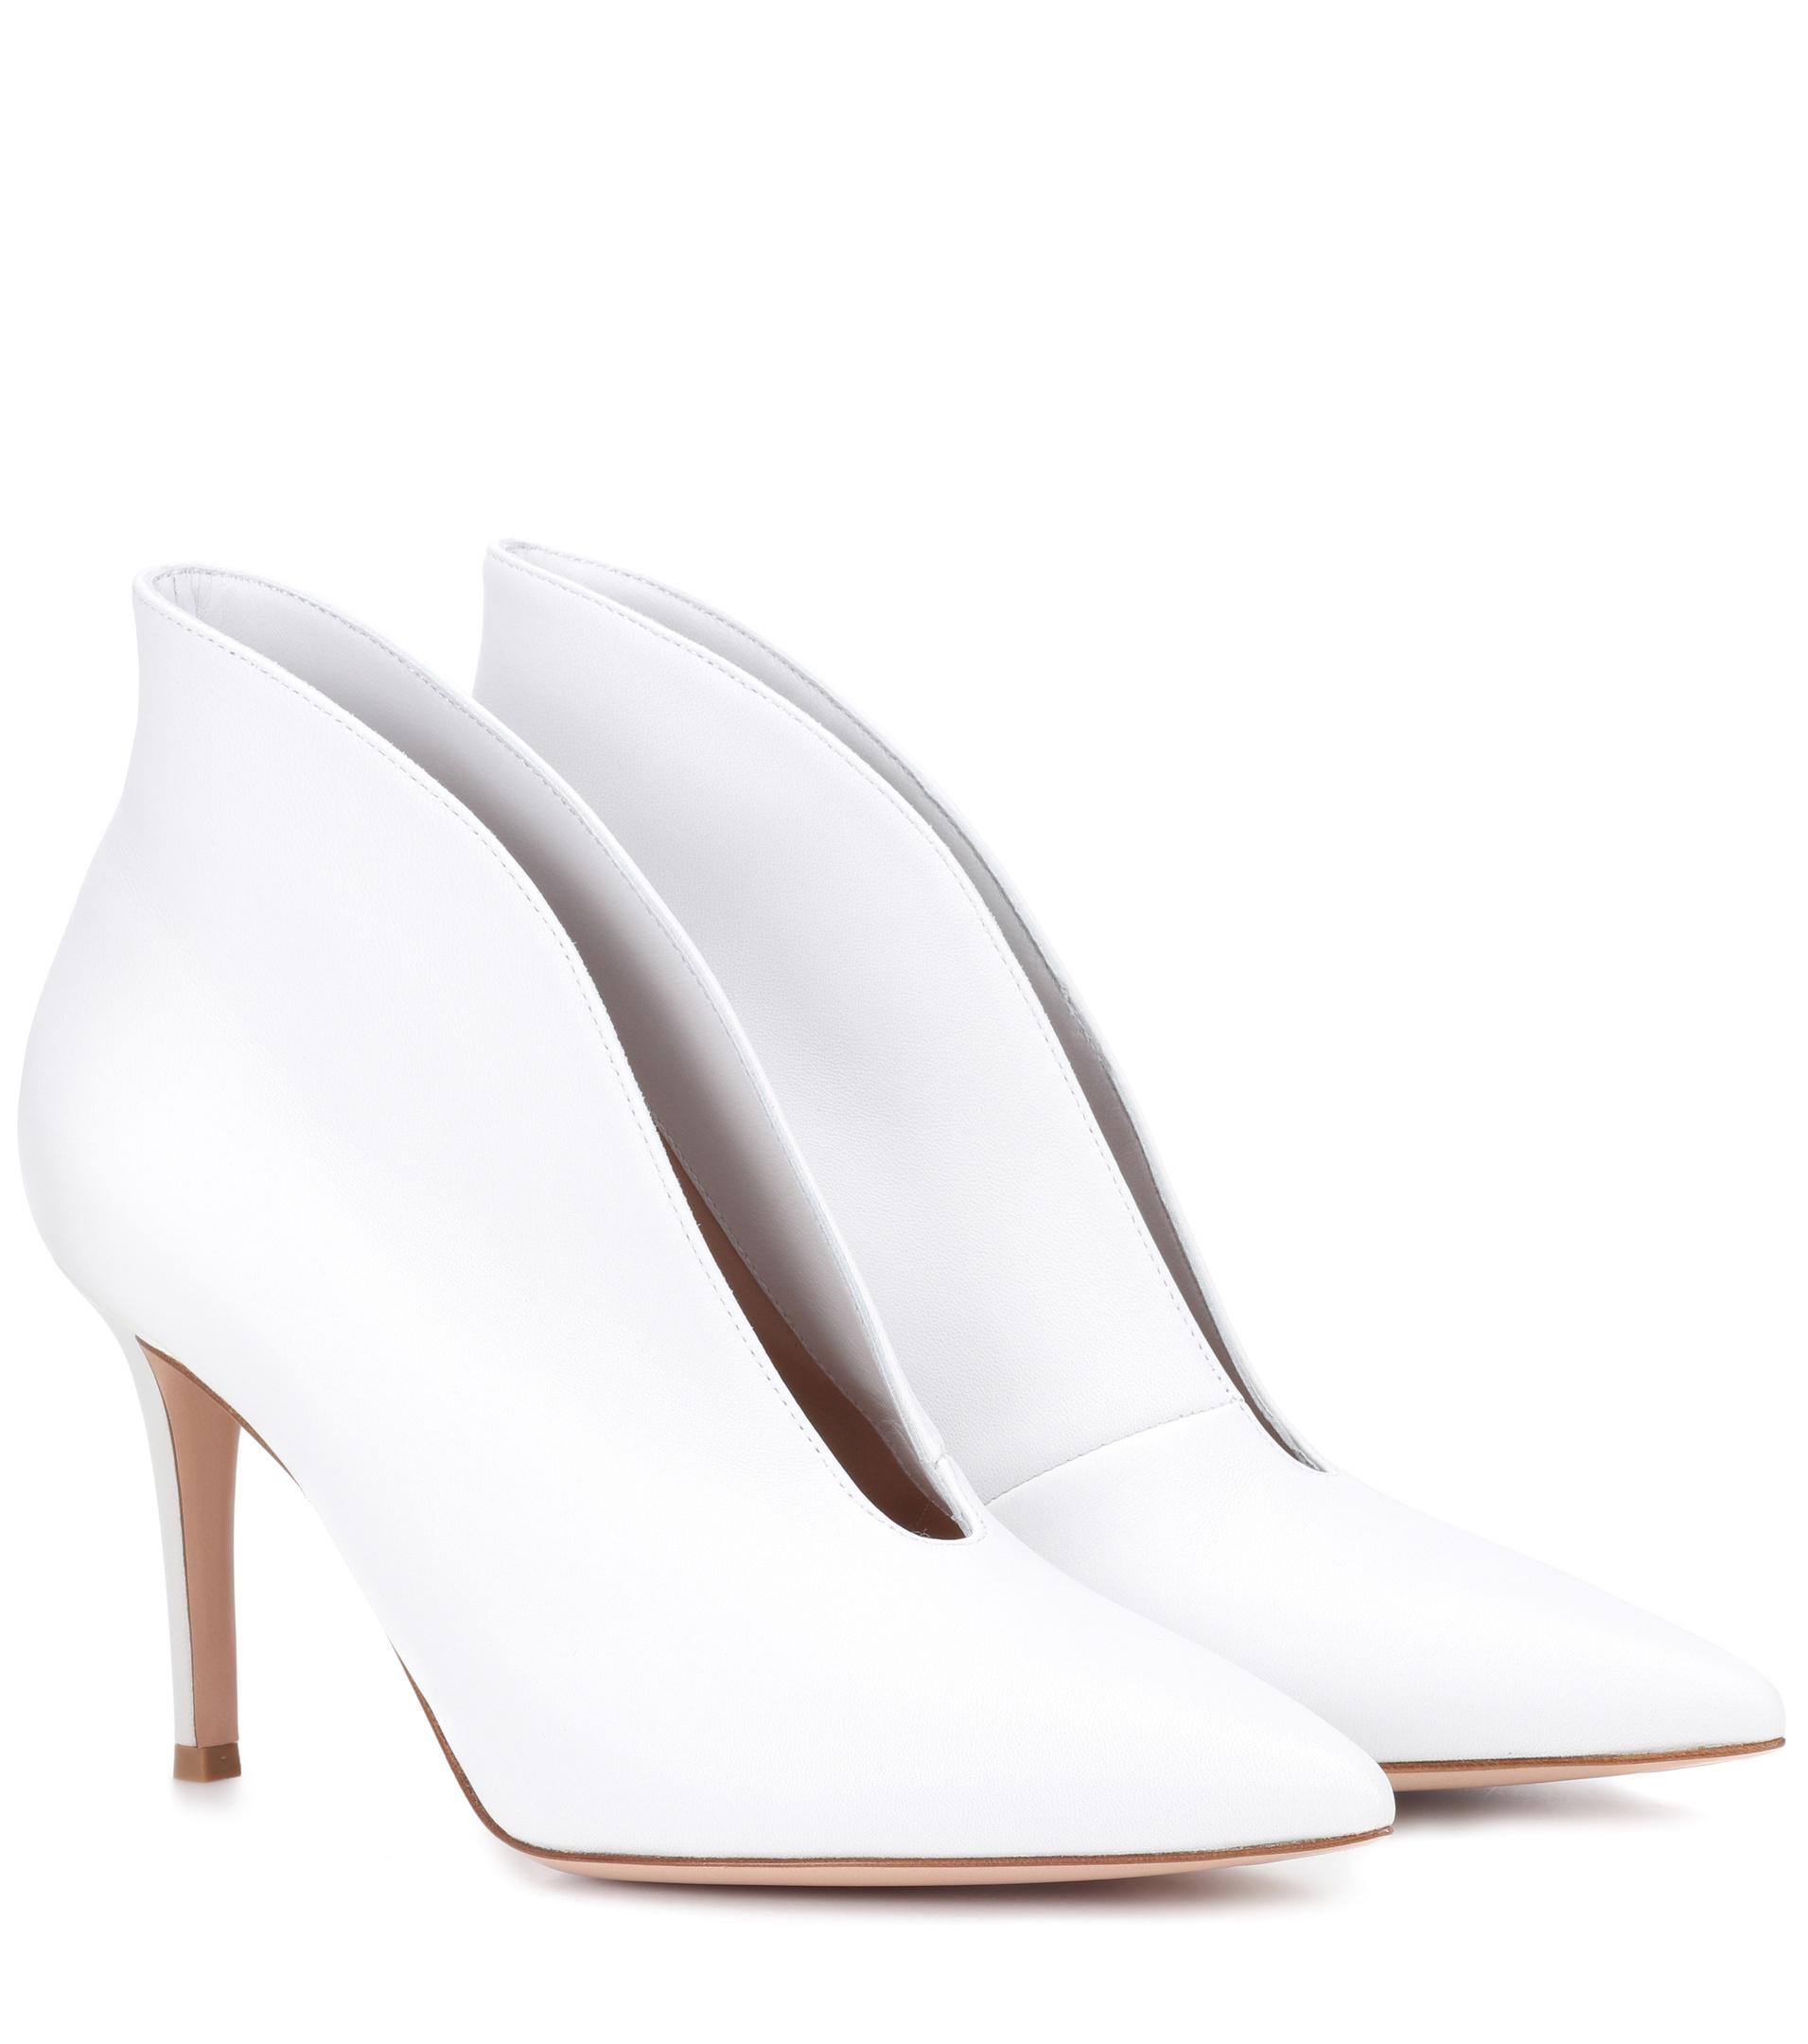 Gianvito Rossi Vania 85 high-cut leather pumps